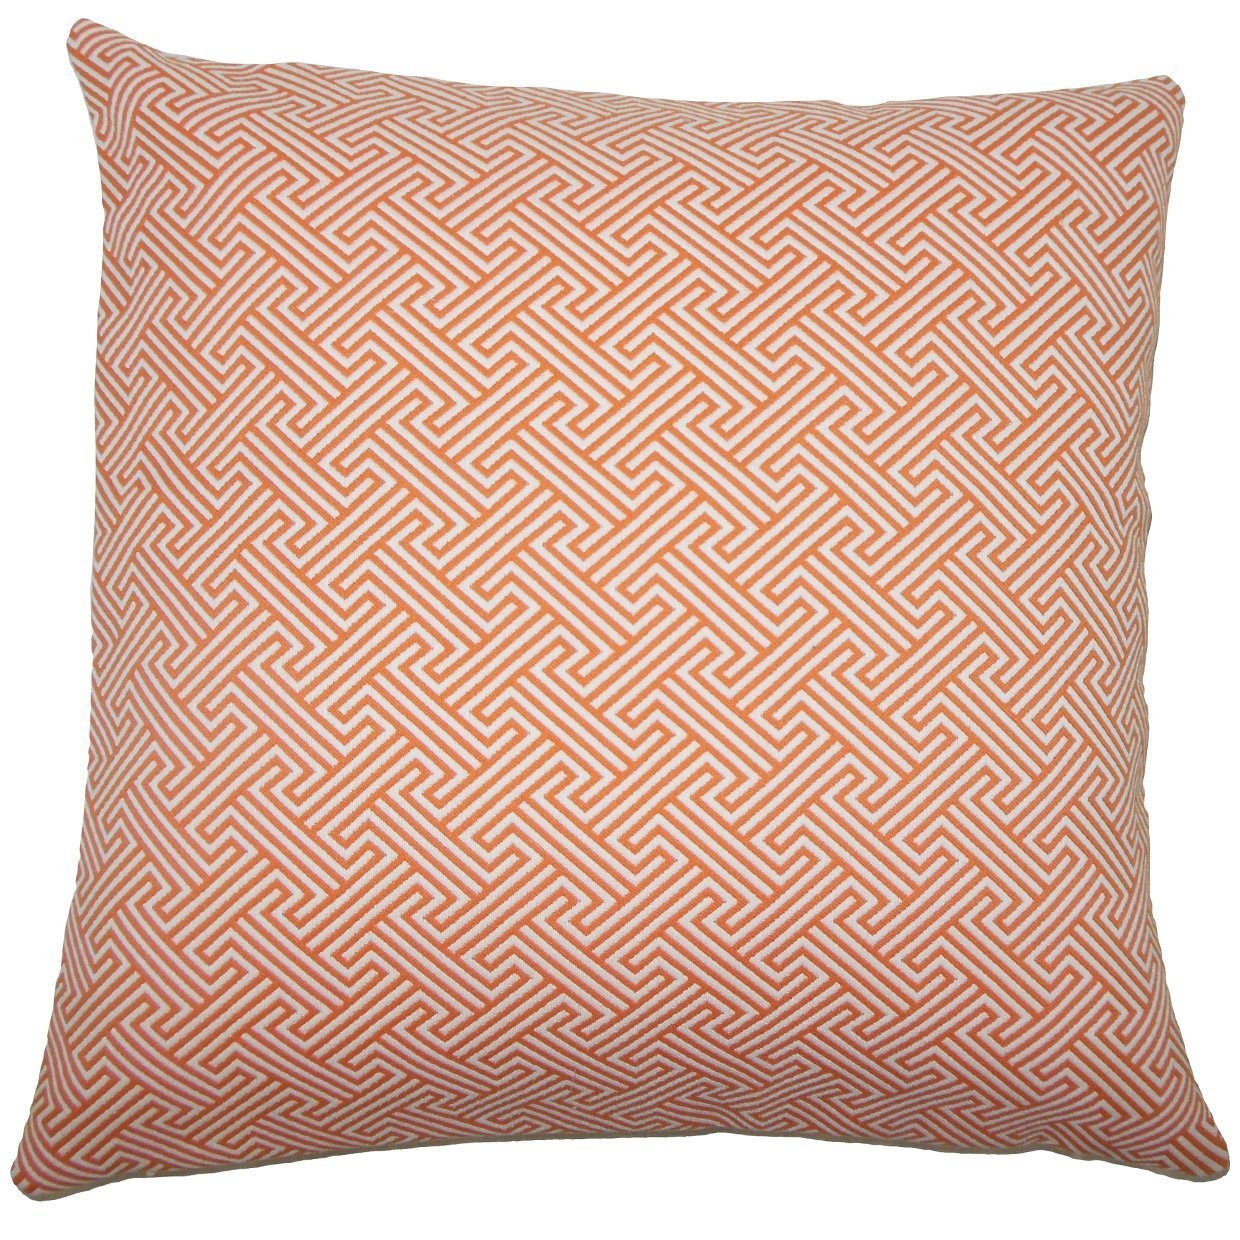 Morton Throw Pillow Cover